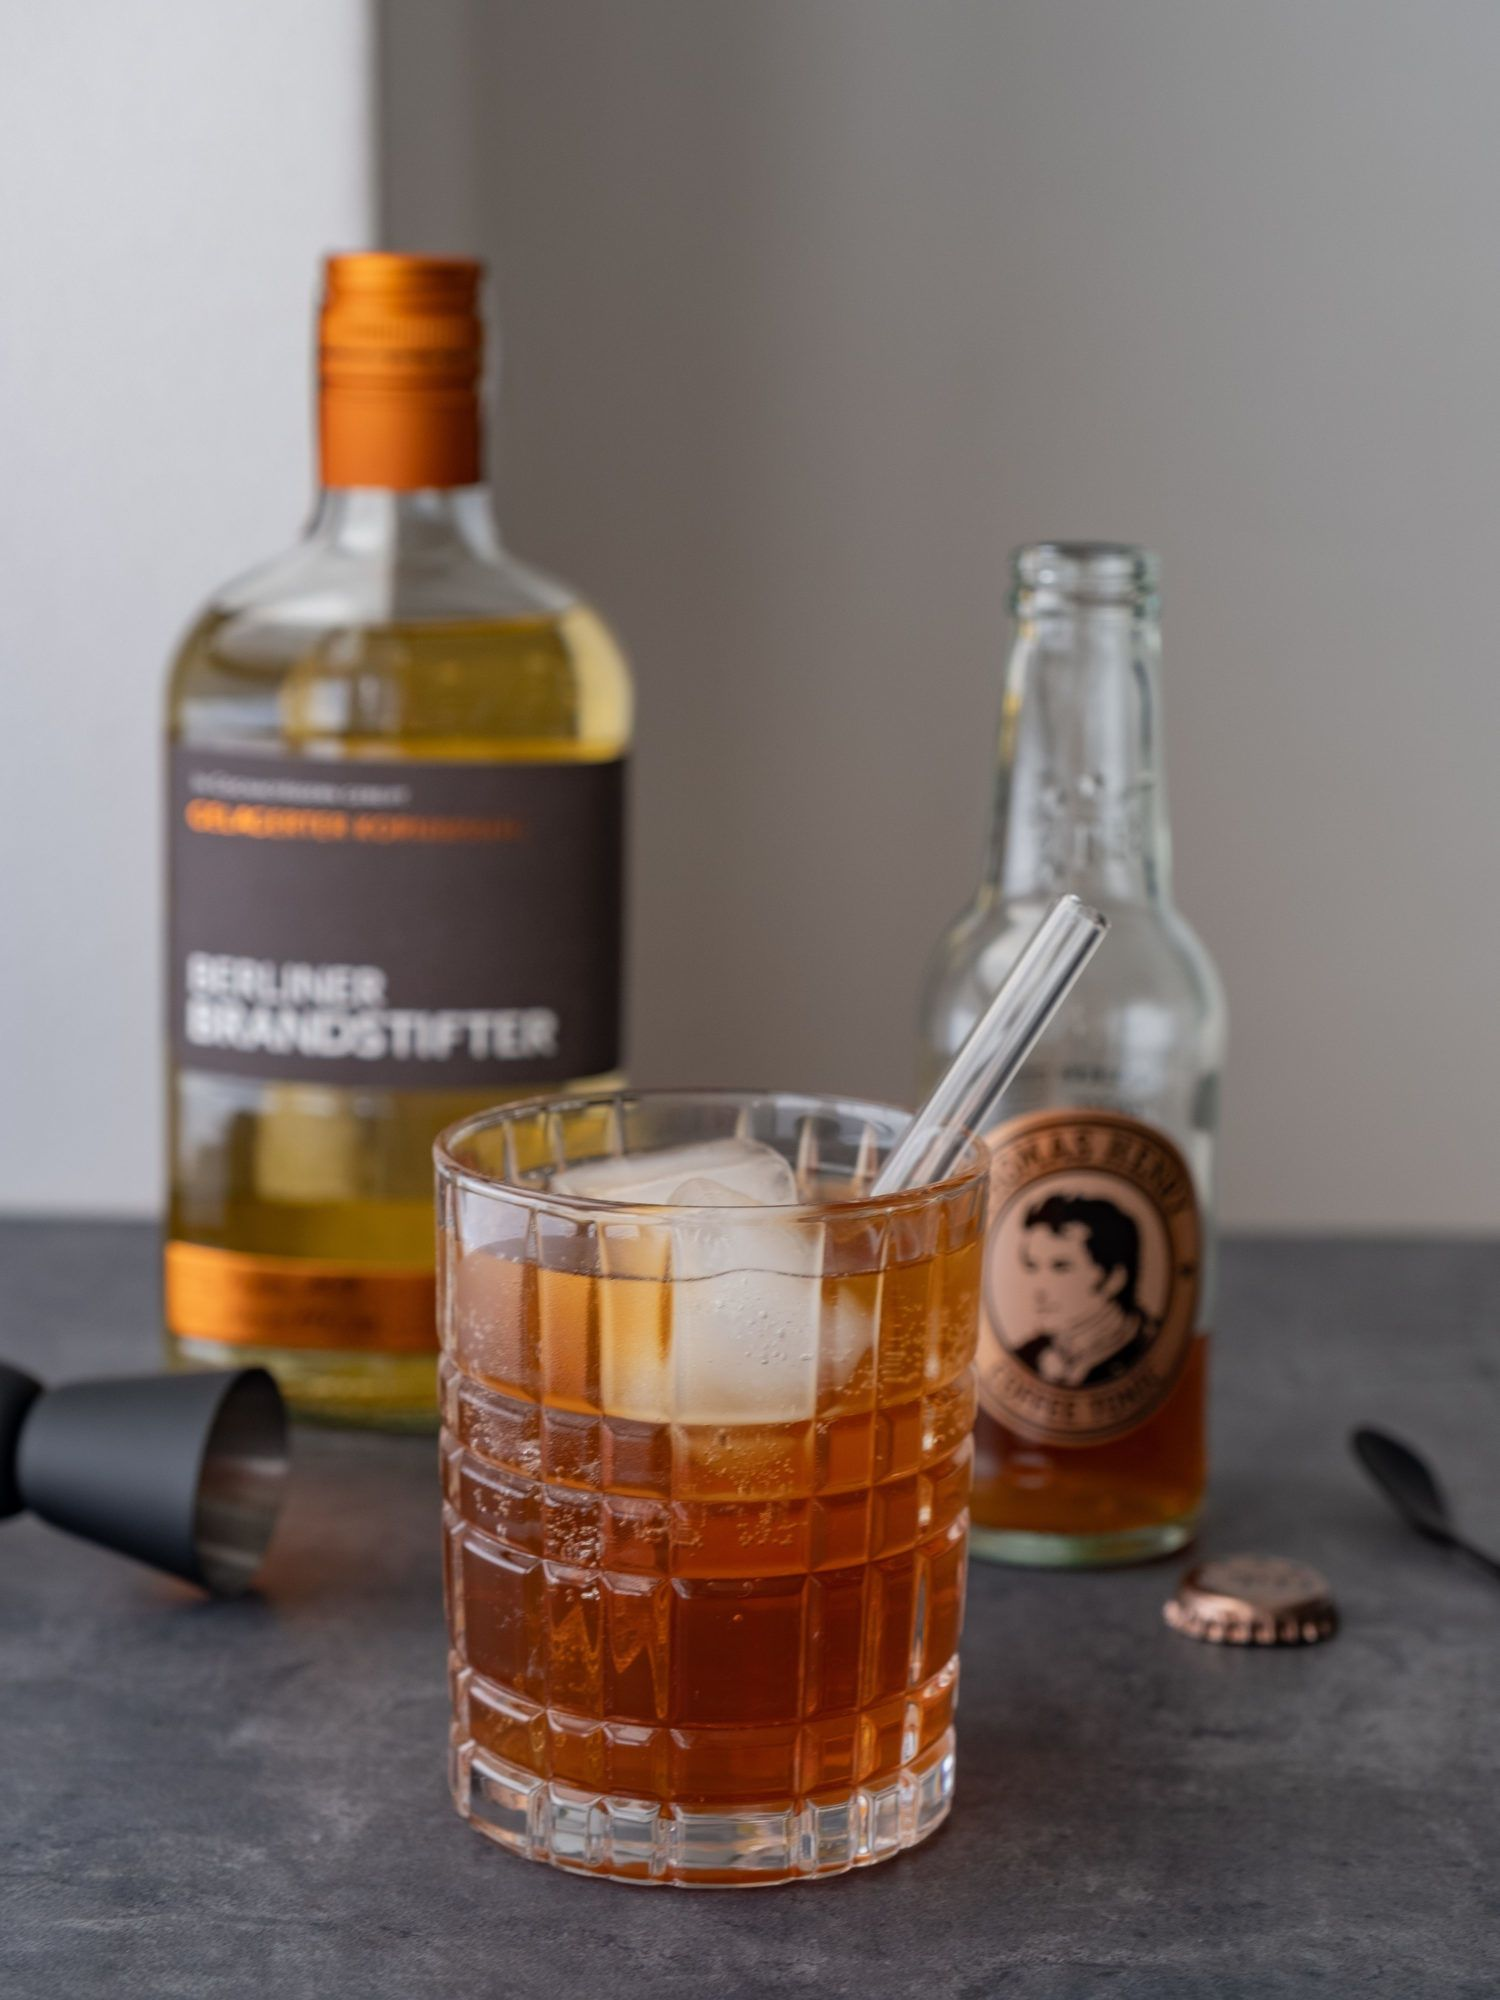 Foodblog, About Fuel, Brandstifter Coffee Tonic, Jigger, Kornbrand, Thomas Henry